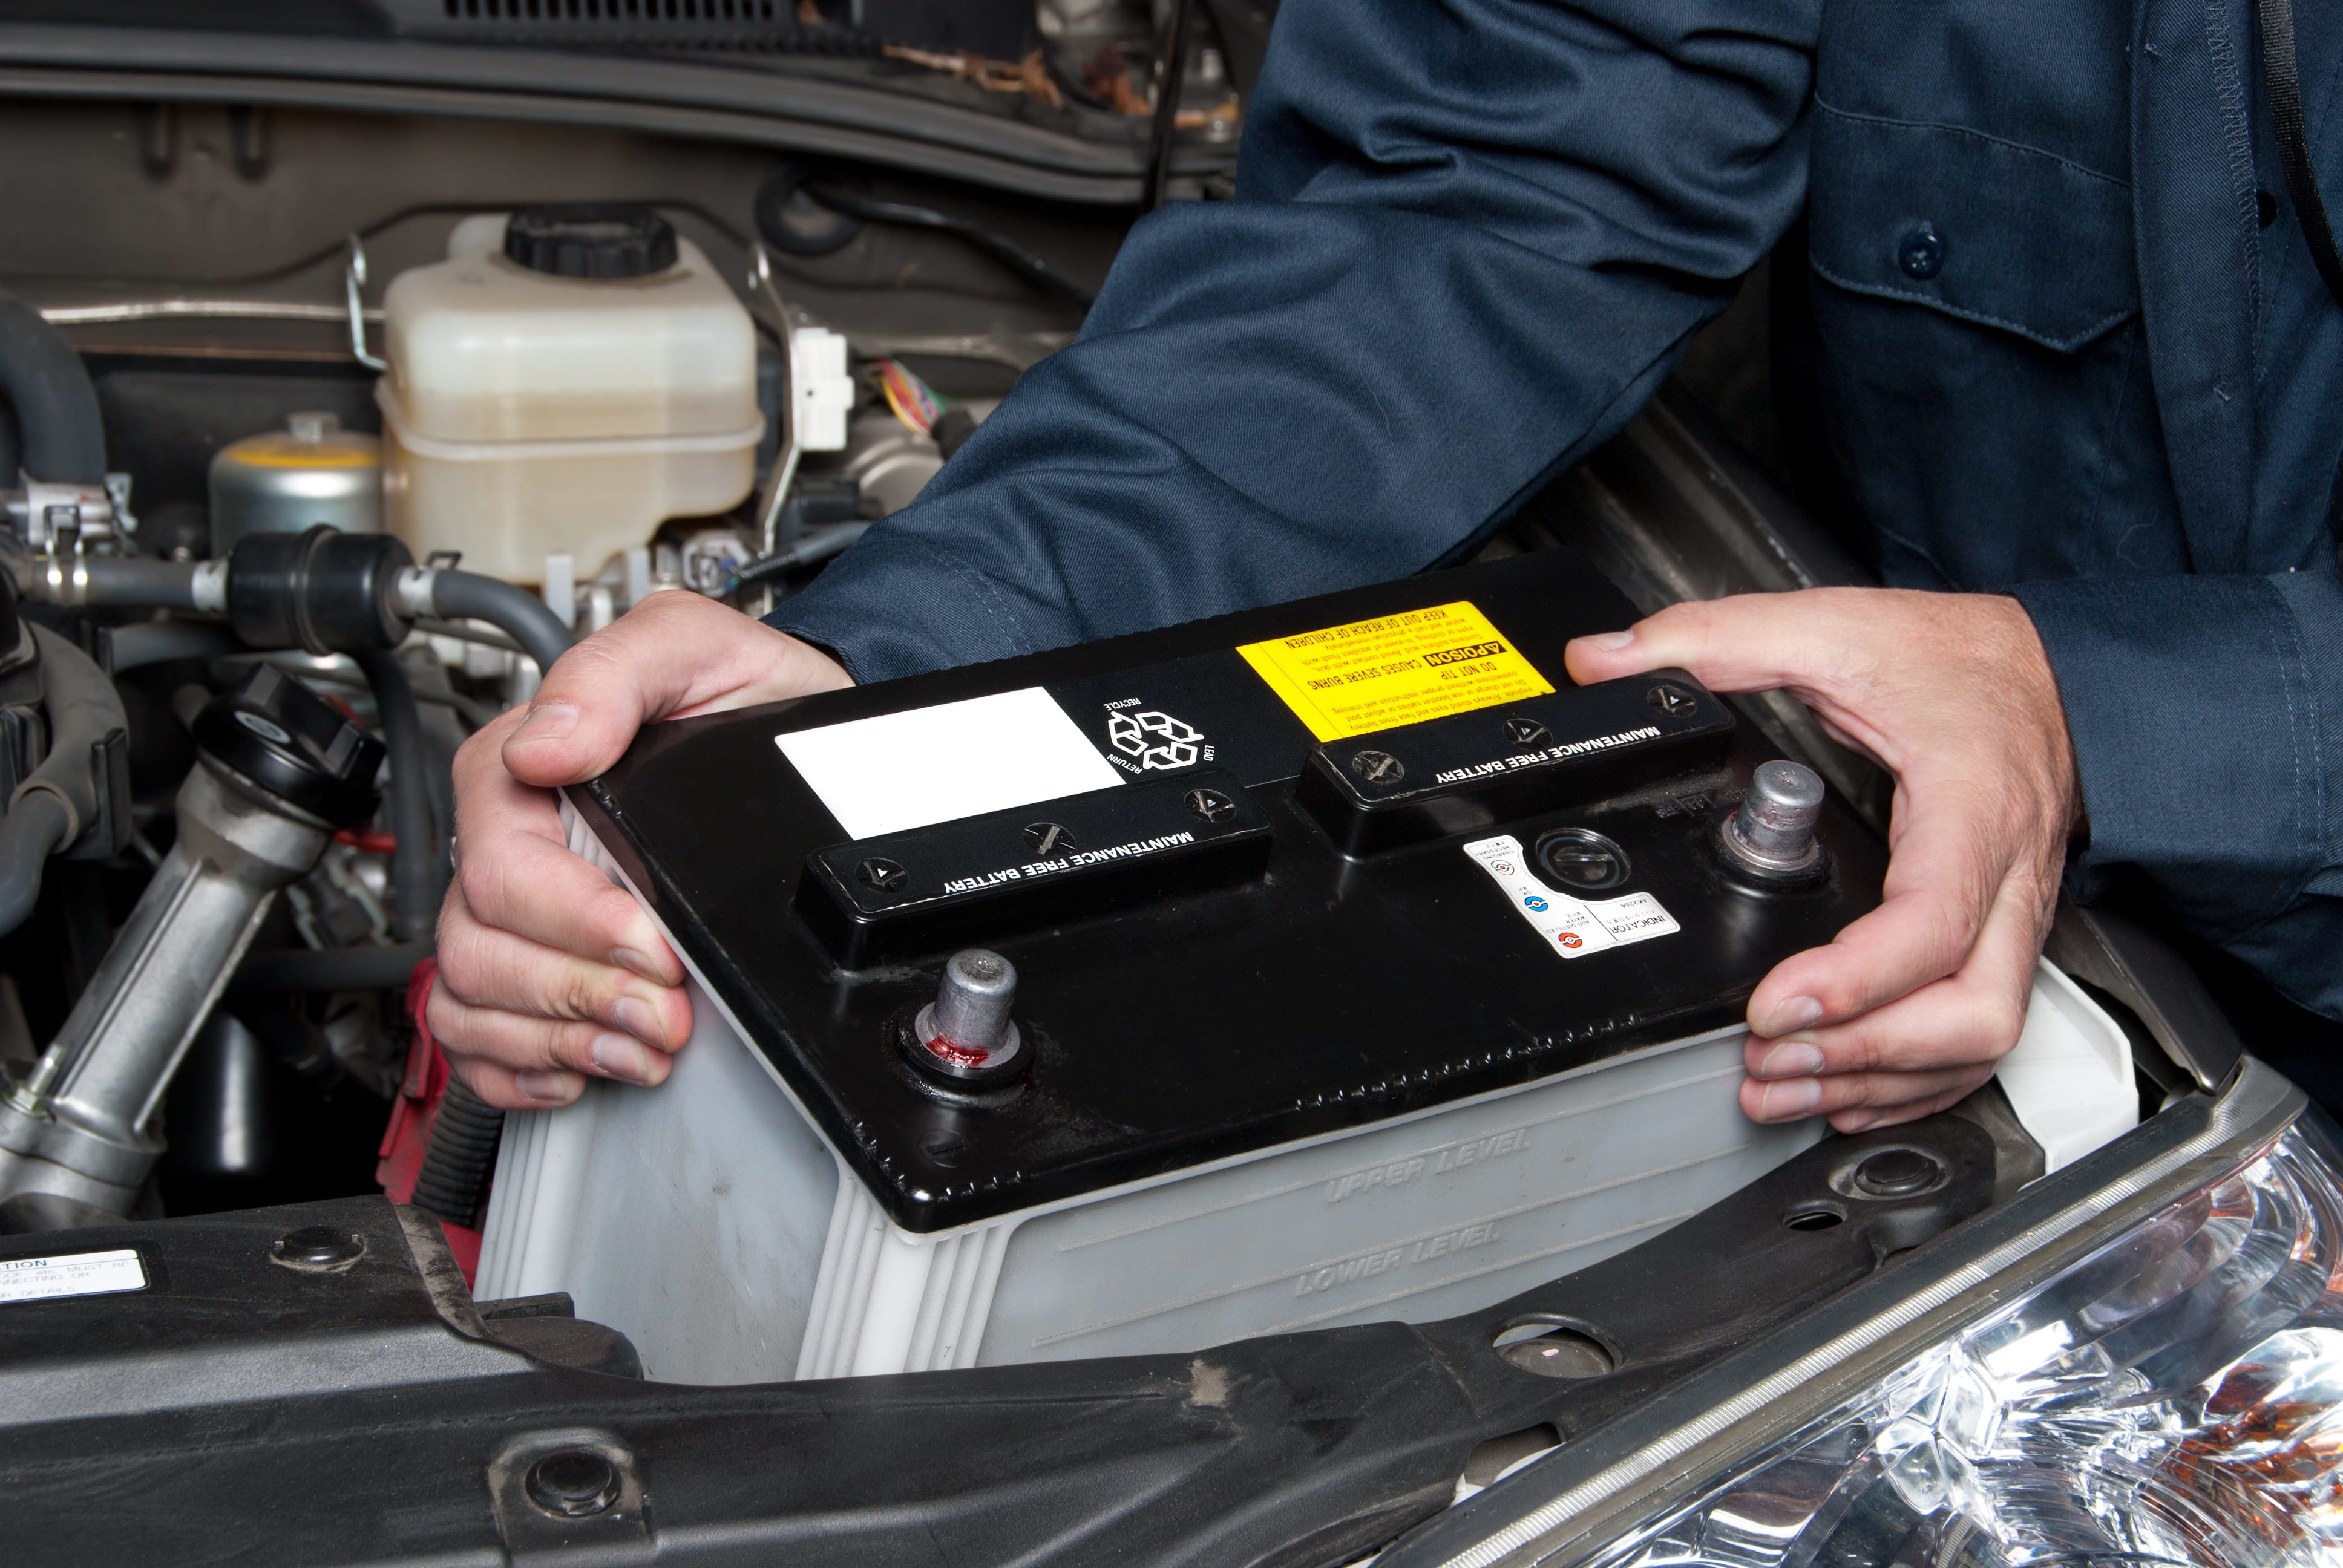 How To Charge A Car Battery Help Advice Centre Rac Shop Amplifier Wiring Kit Halfords About Our Batteries